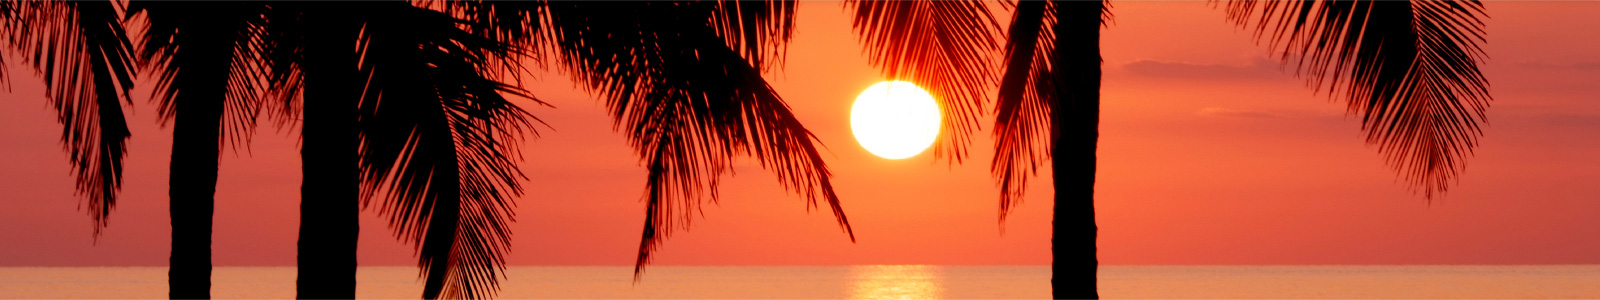 Grand Bahama Island sunset with Palm Trees